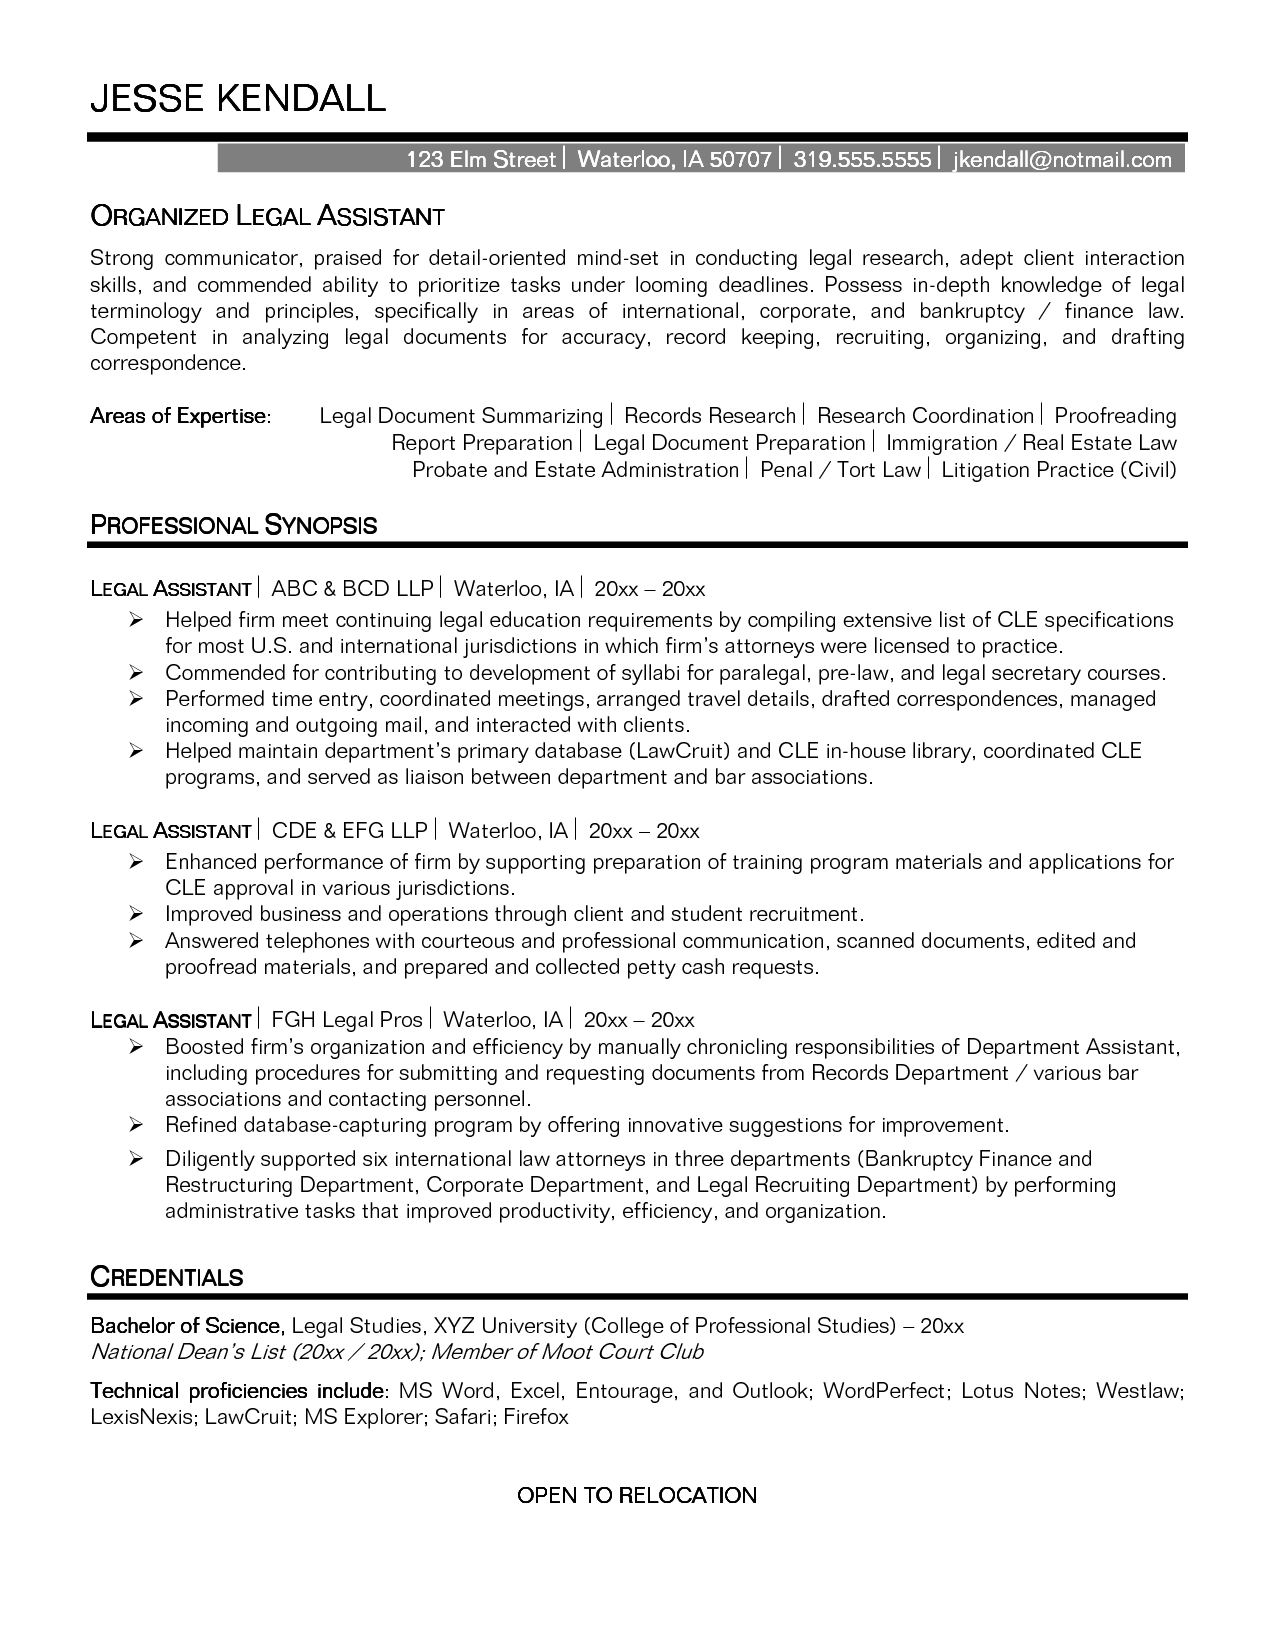 Social Work Resume Objective Objective Sample Resume Office Assistant Paralegal Objectives